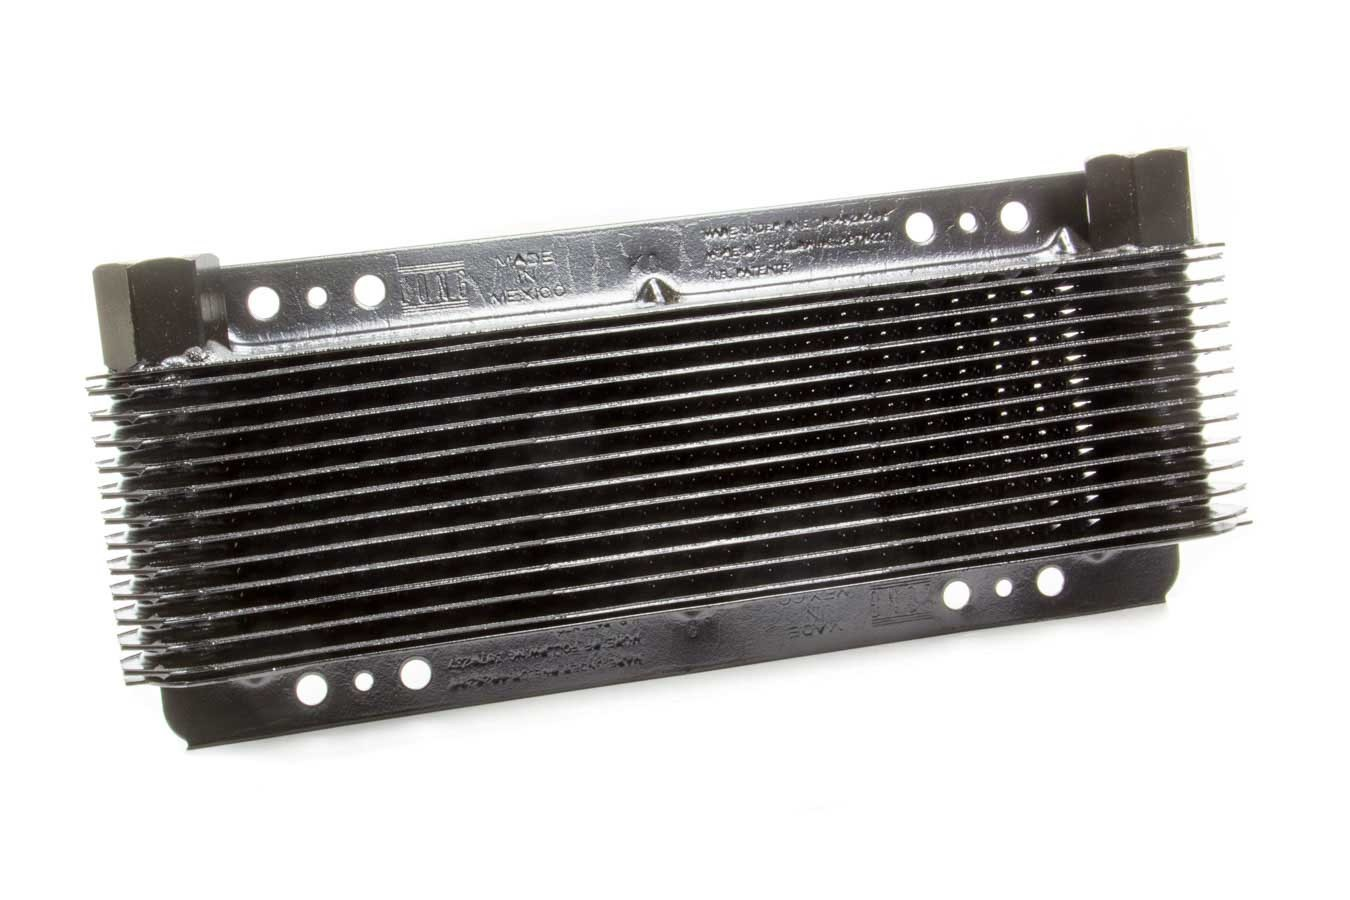 Engine Oil Cooler 2.75in x 11in x 1.5in